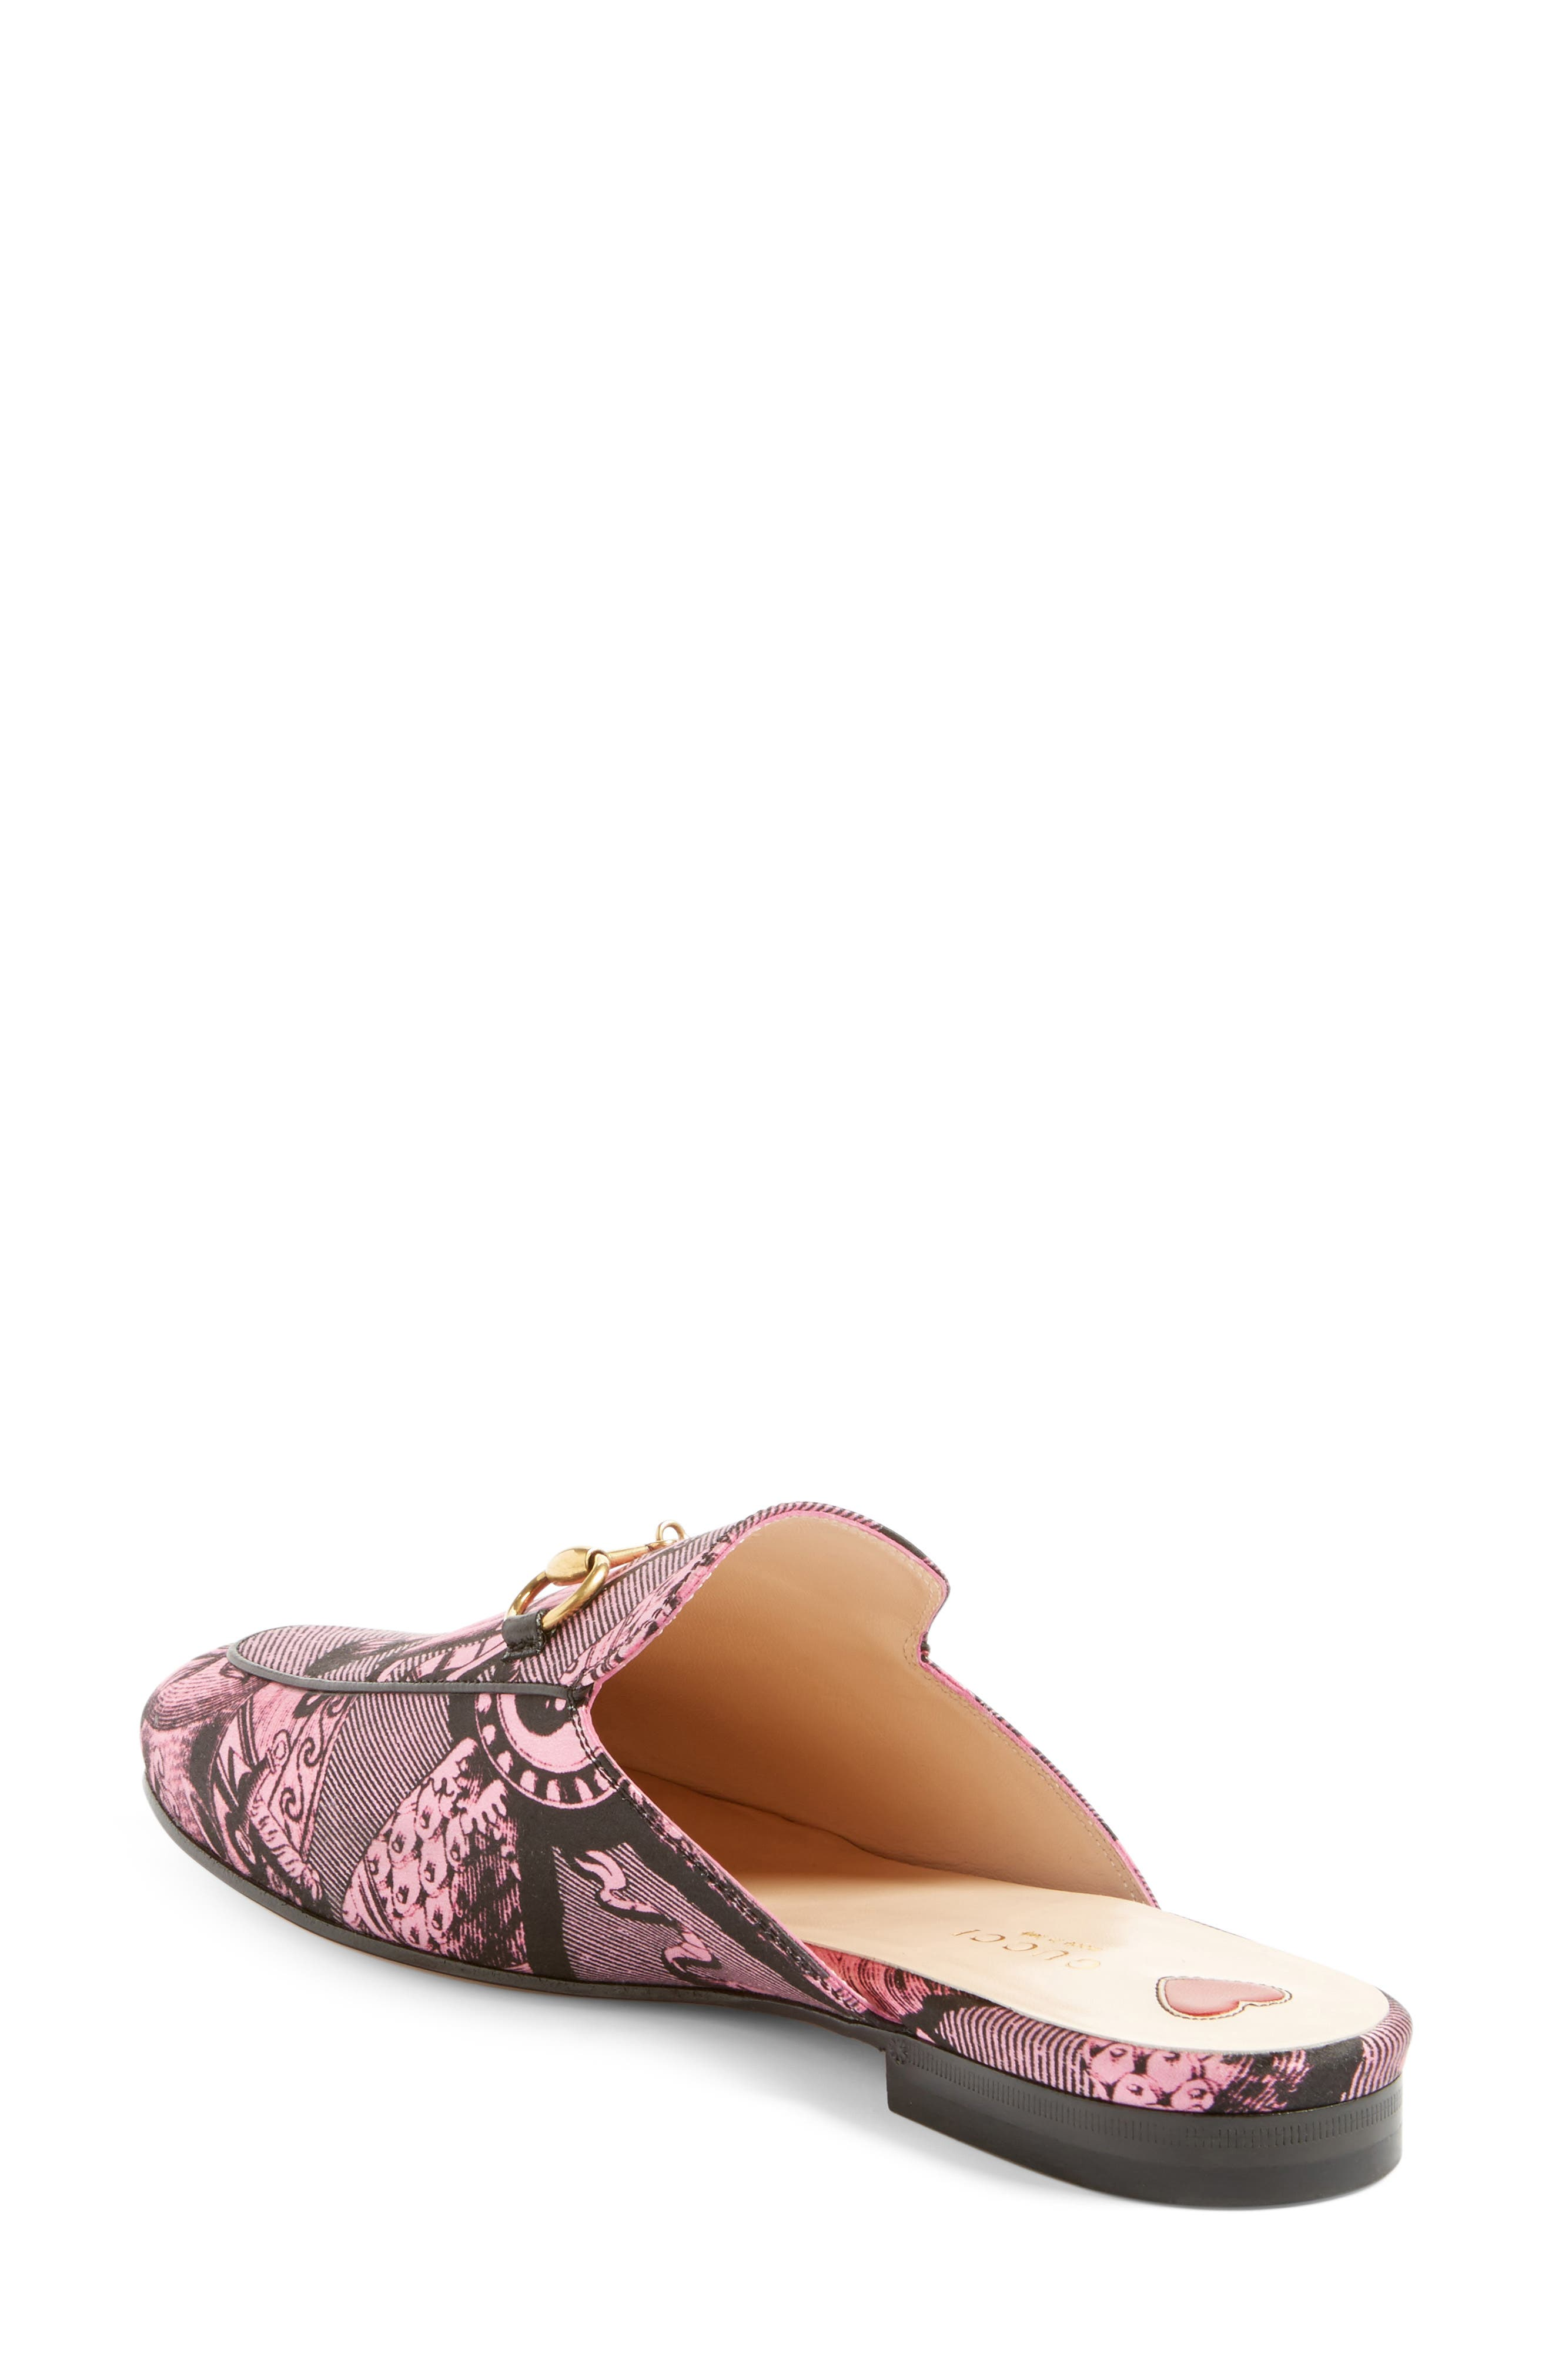 Princetown Loafer Mule,                             Alternate thumbnail 4, color,